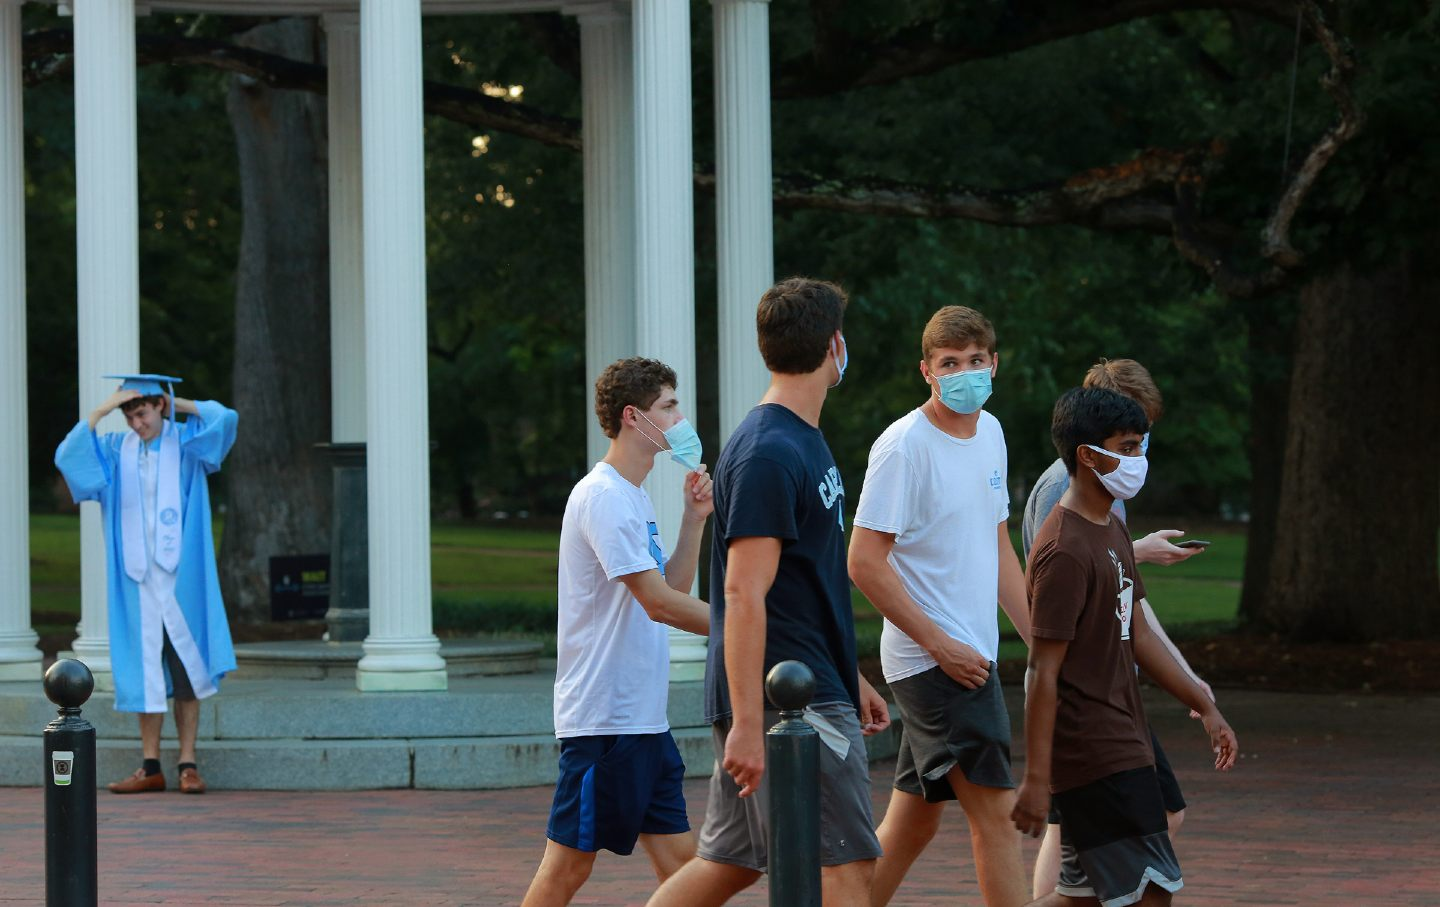 A group of five UNC freshman boys walk on campus wearing masks.